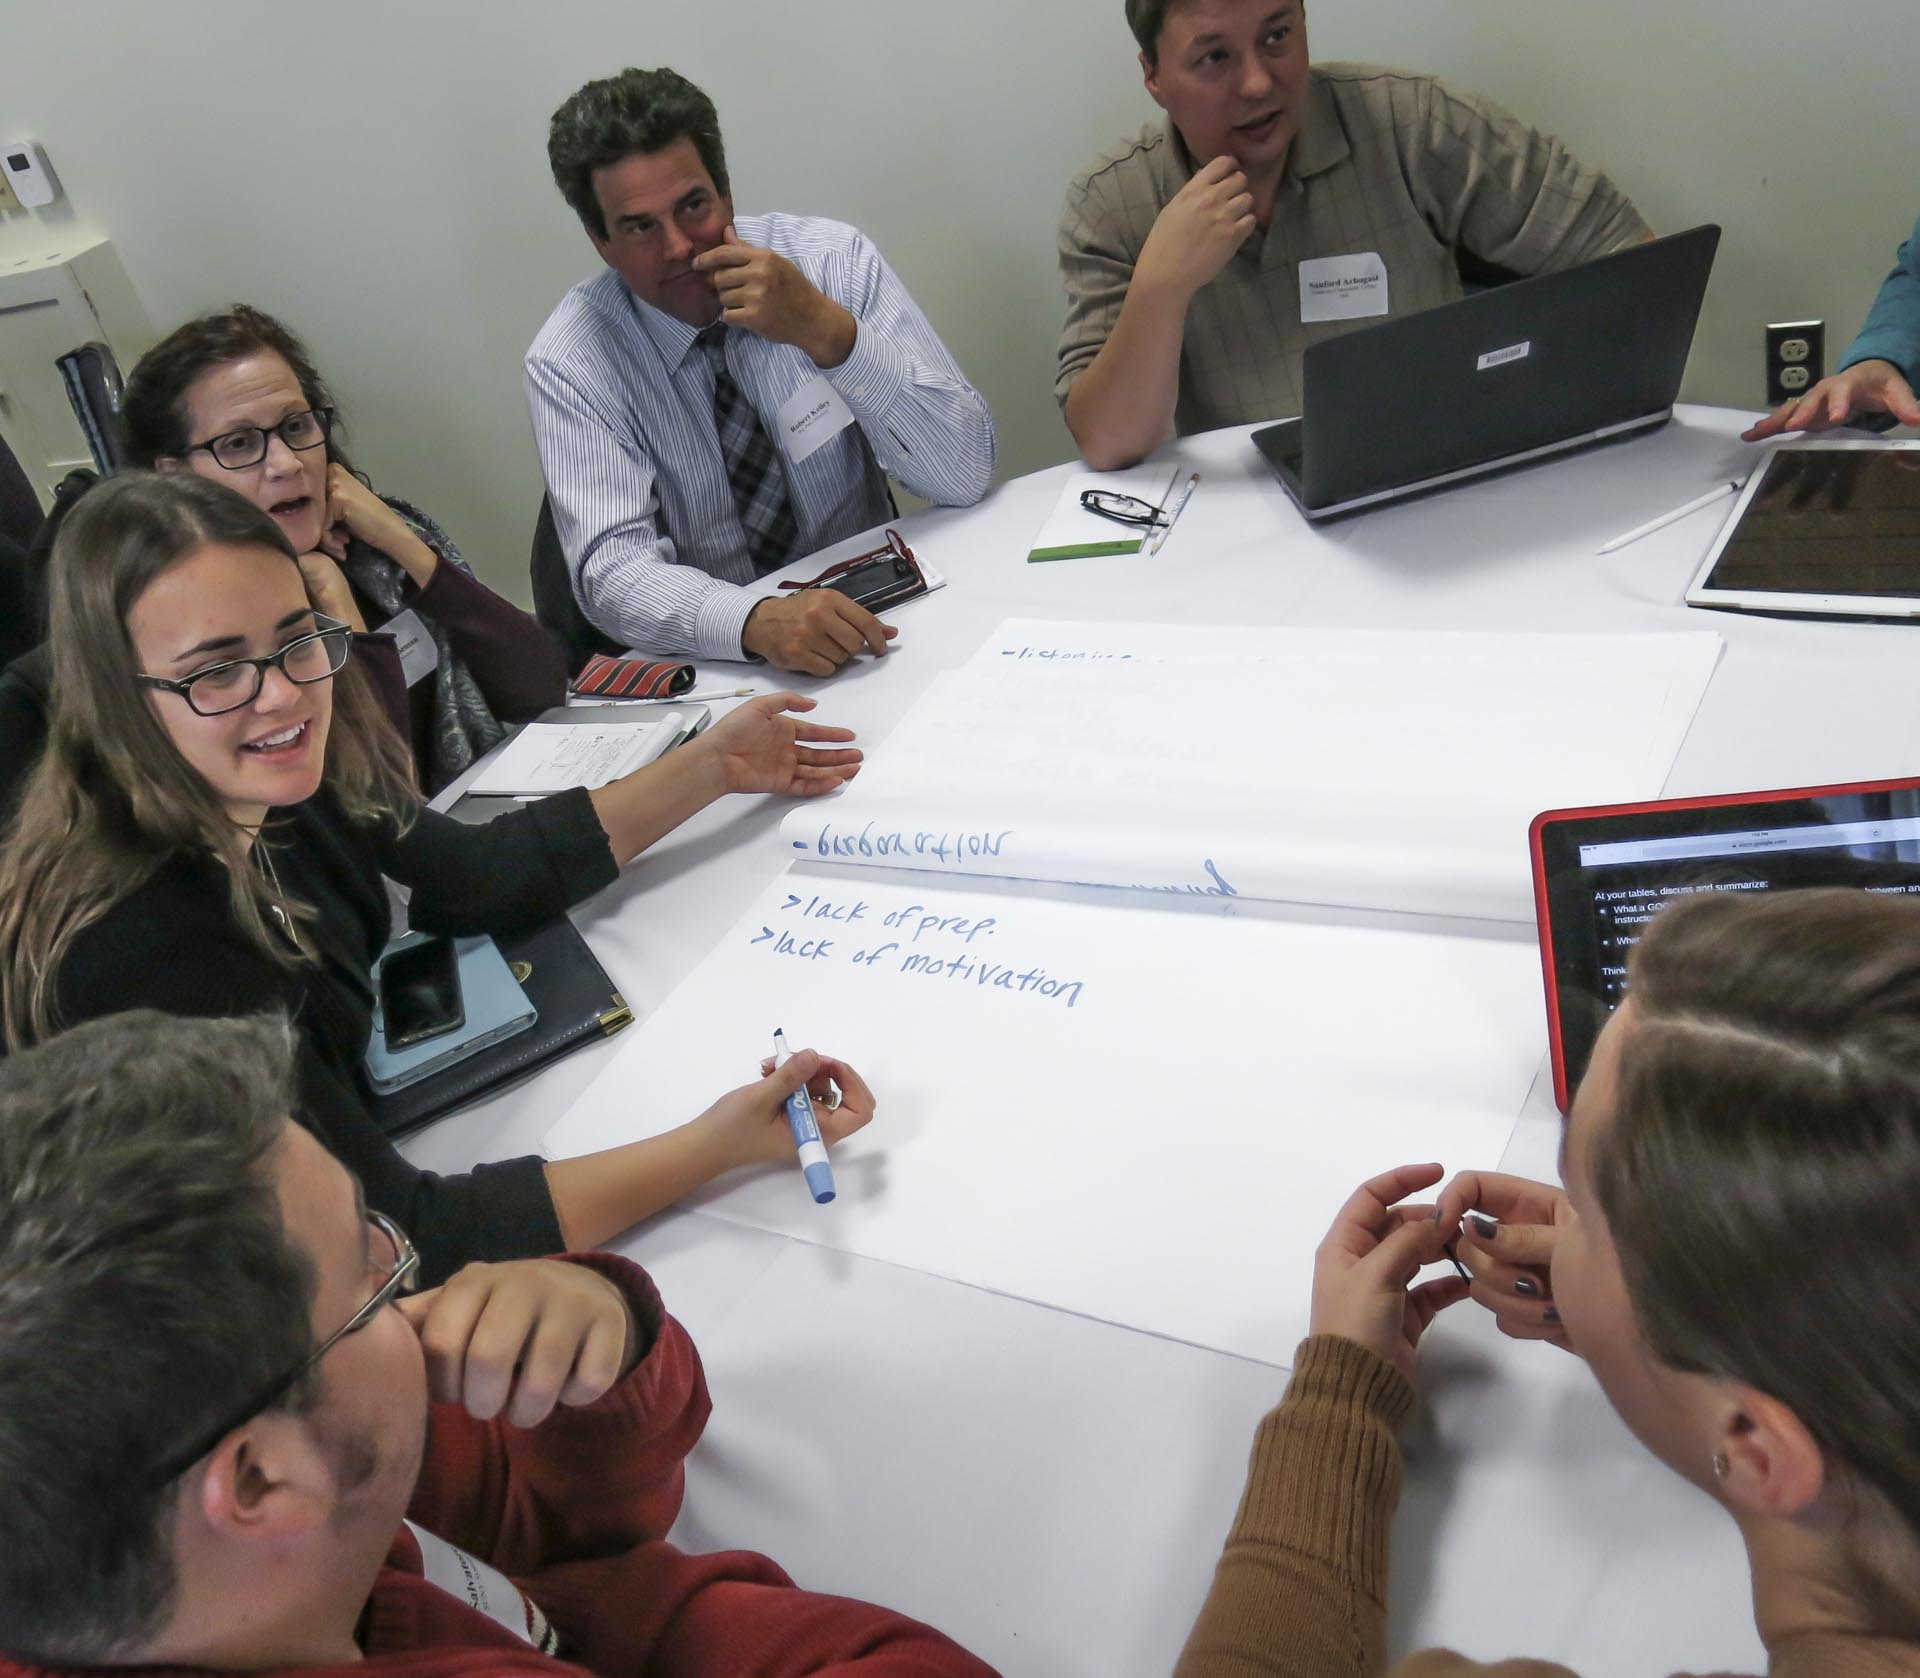 Participants collaborating at table